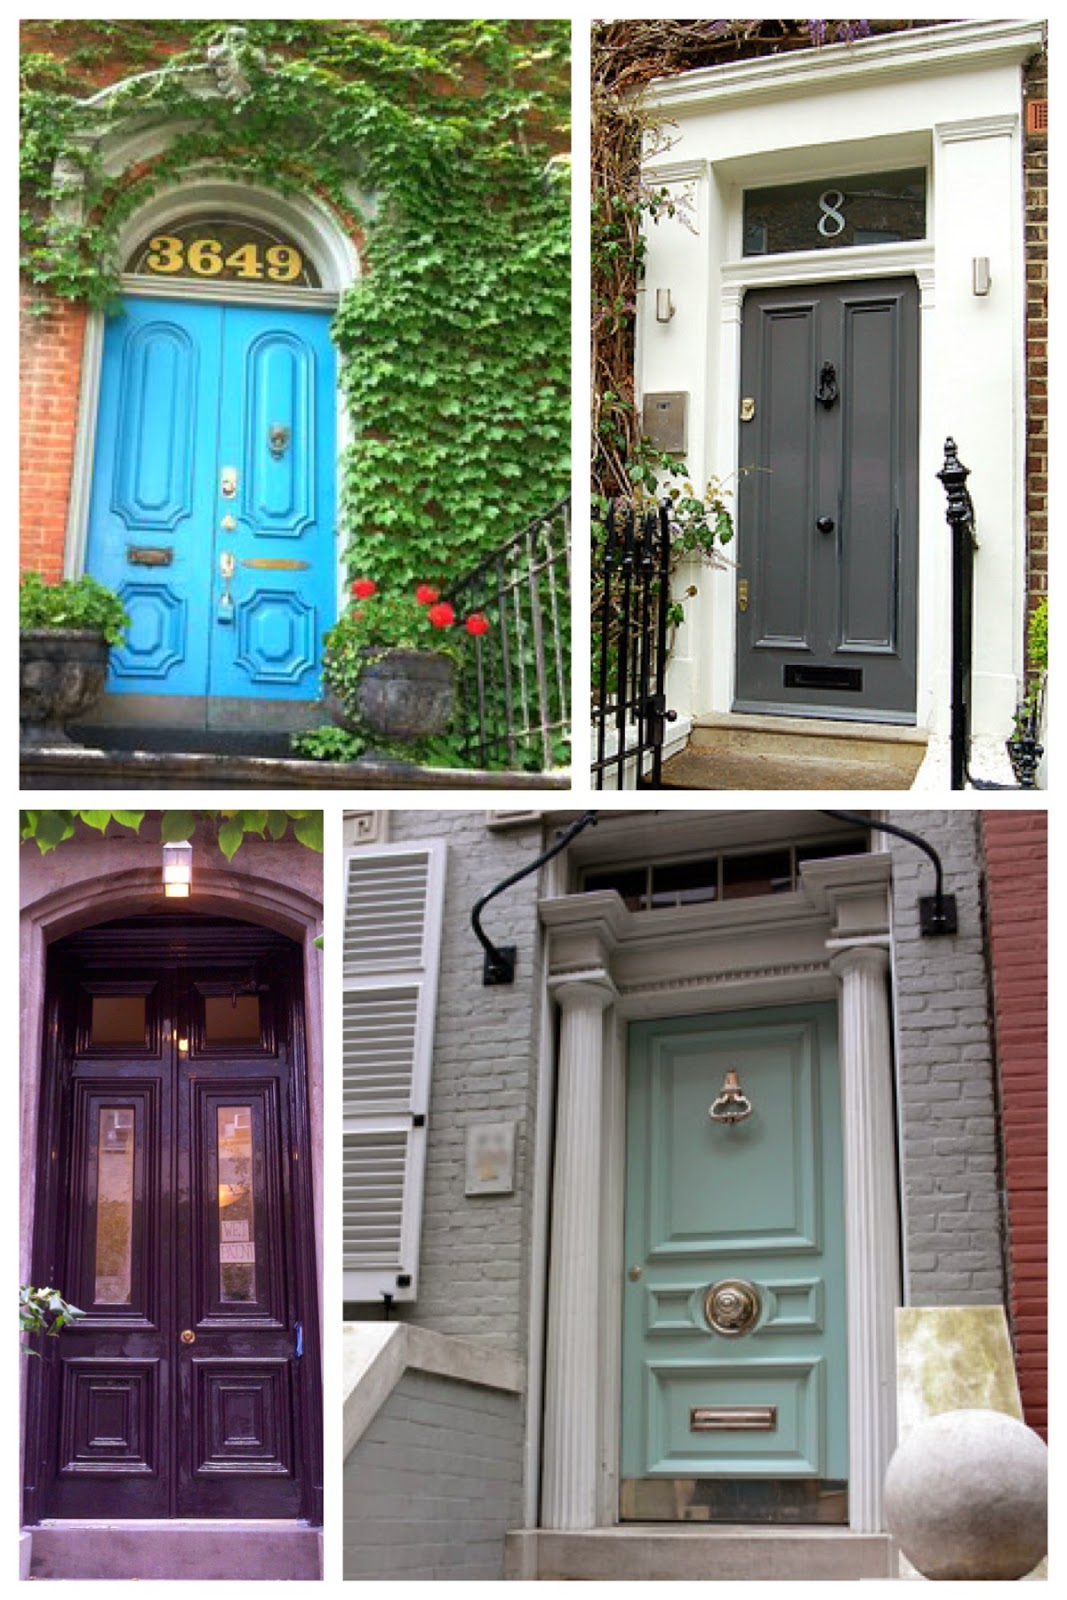 What color is your front door? | Brooklyn Limestone